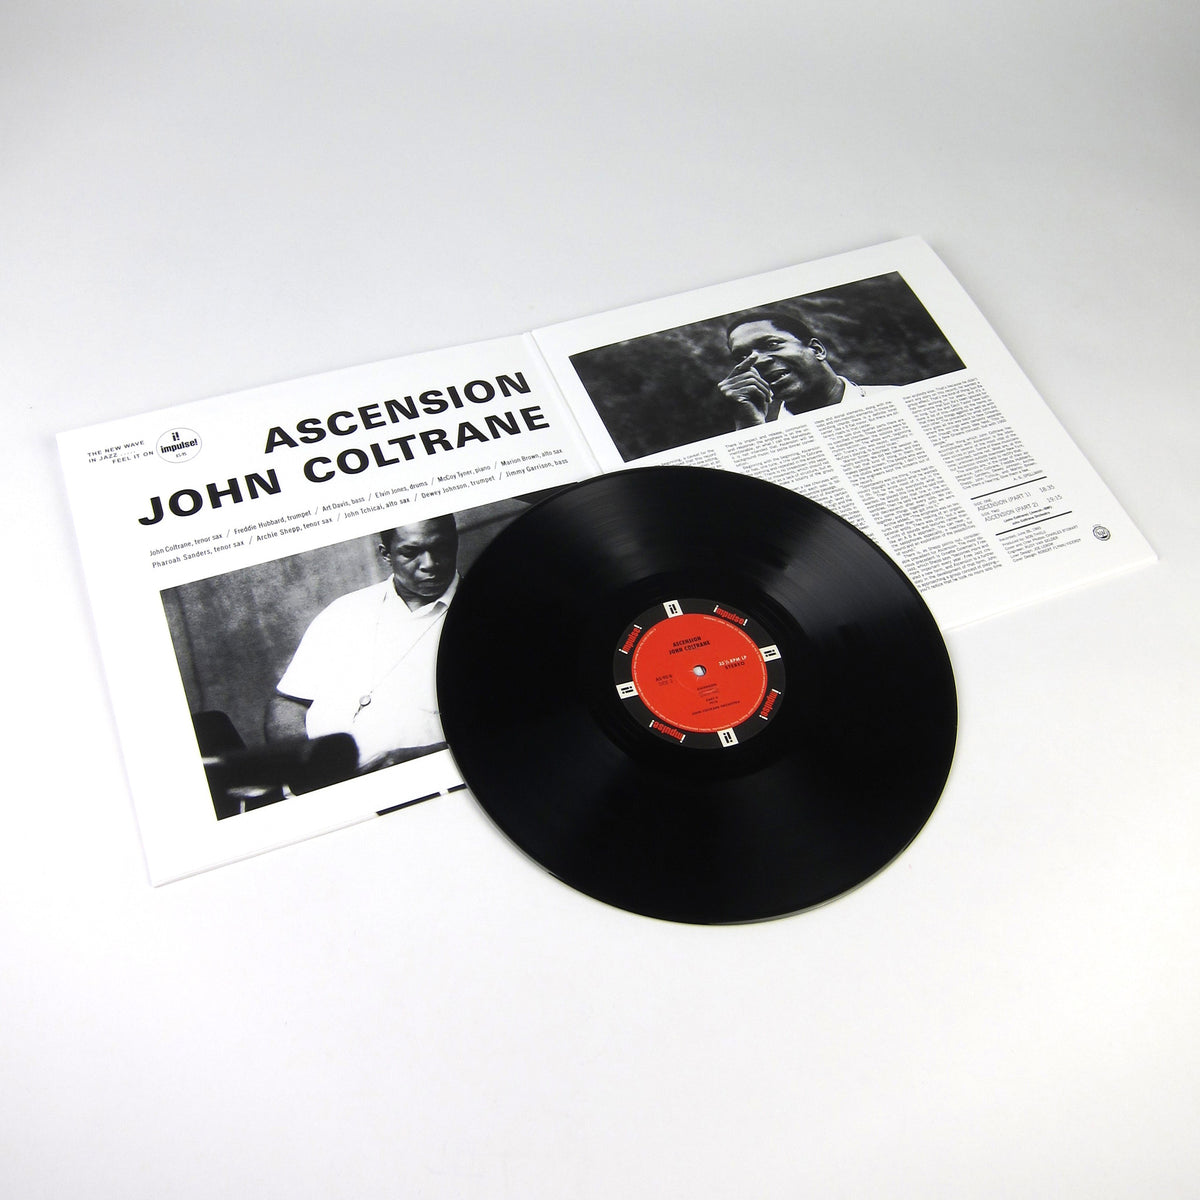 John Coltrane: Ascension Vinyl LP